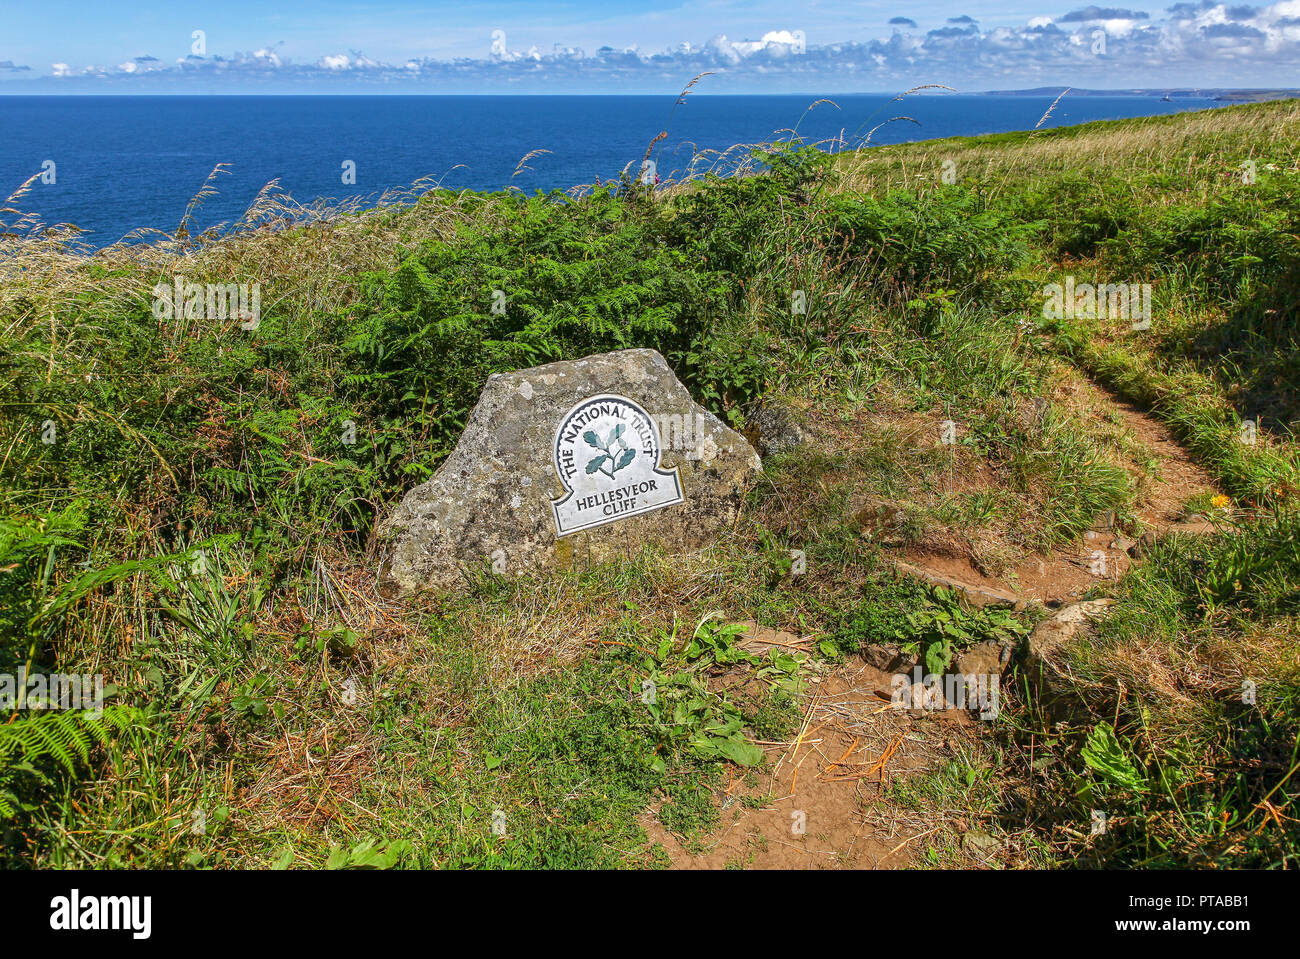 A National Trust Omega sign saying Hellesveor Cliff, near St. Ives, Cornwall, England, UK (photo taken from public footpath) Stock Photo